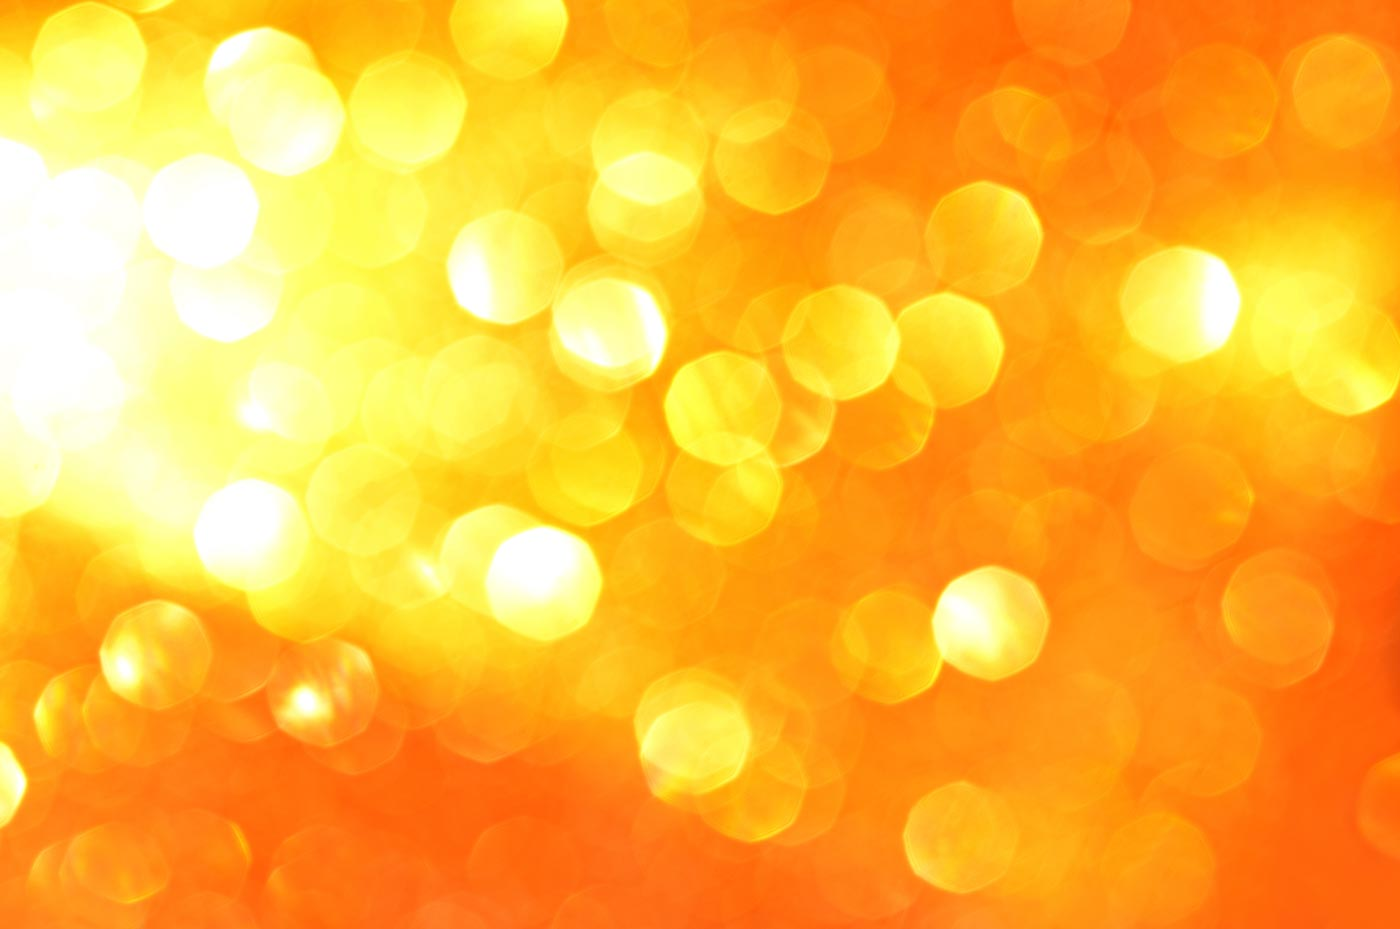 Orange Light Wallpapers 34827 1400x929 px ~ HDWallSource.com